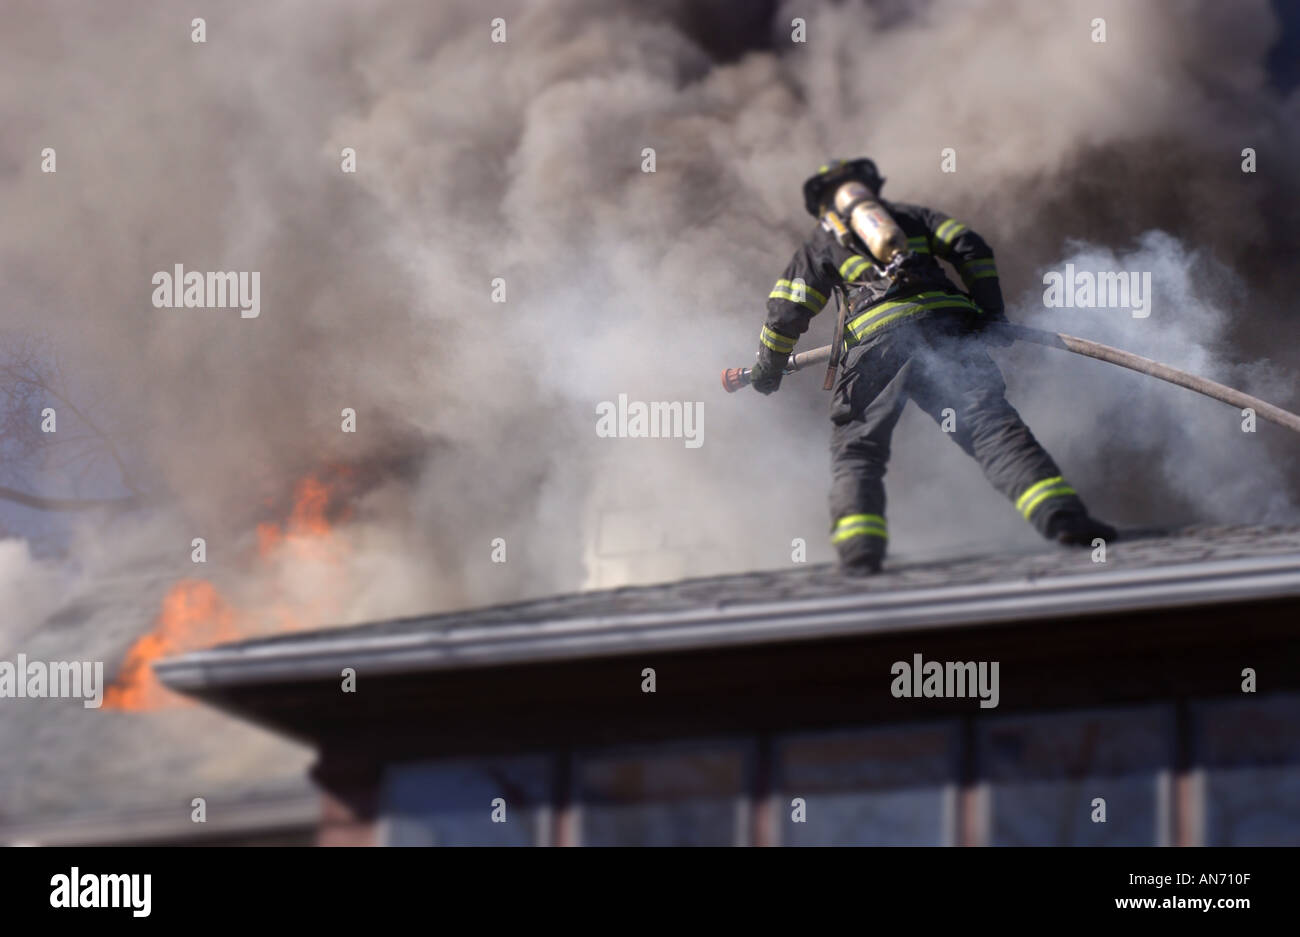 Firefighter on a roof fighting a fire - Stock Image